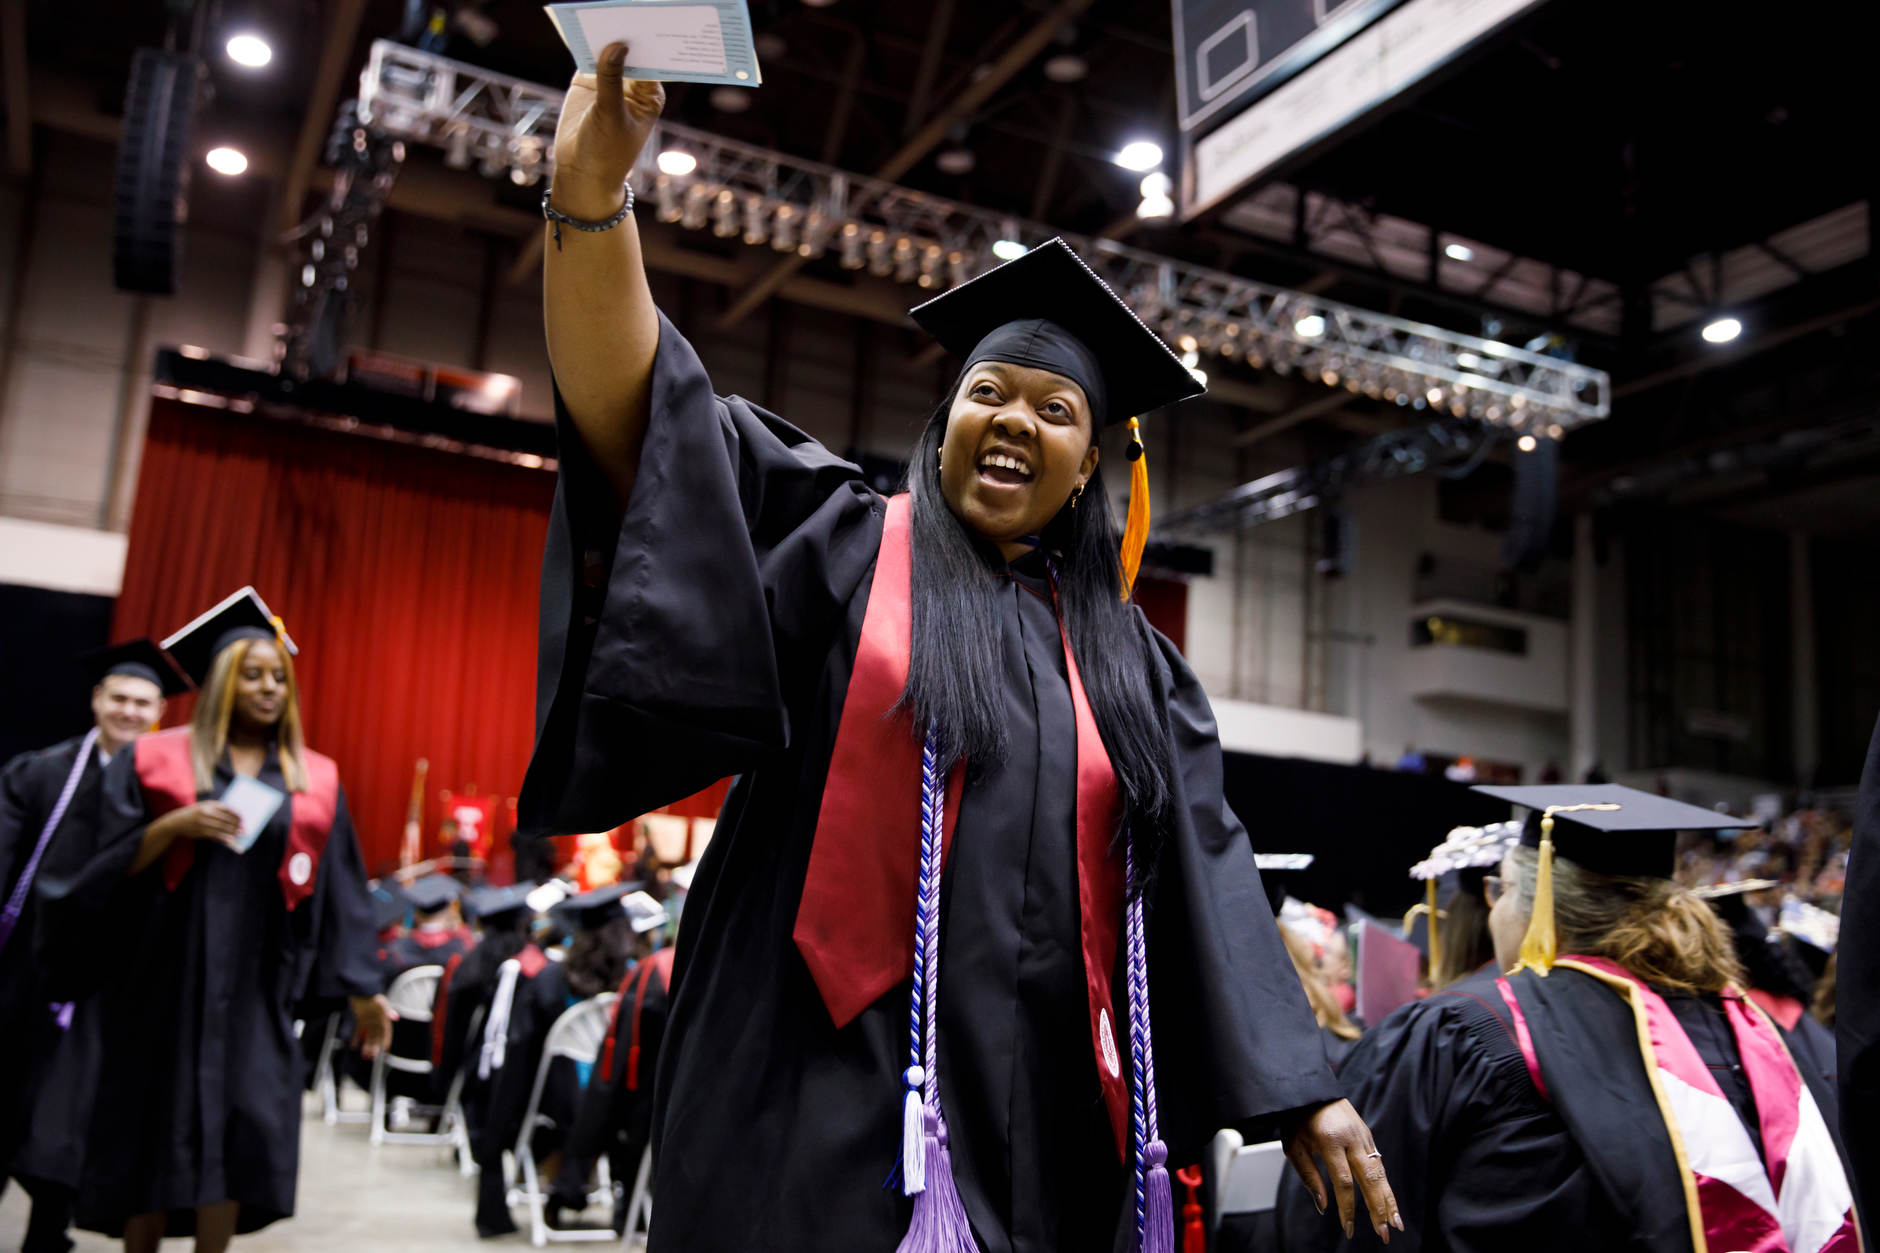 A graduate waves to friends in the audience during the IU Northwest Commencement at the Genesis Convention Center on Thursday, May 9, 2019. (James Brosher/Indiana University)